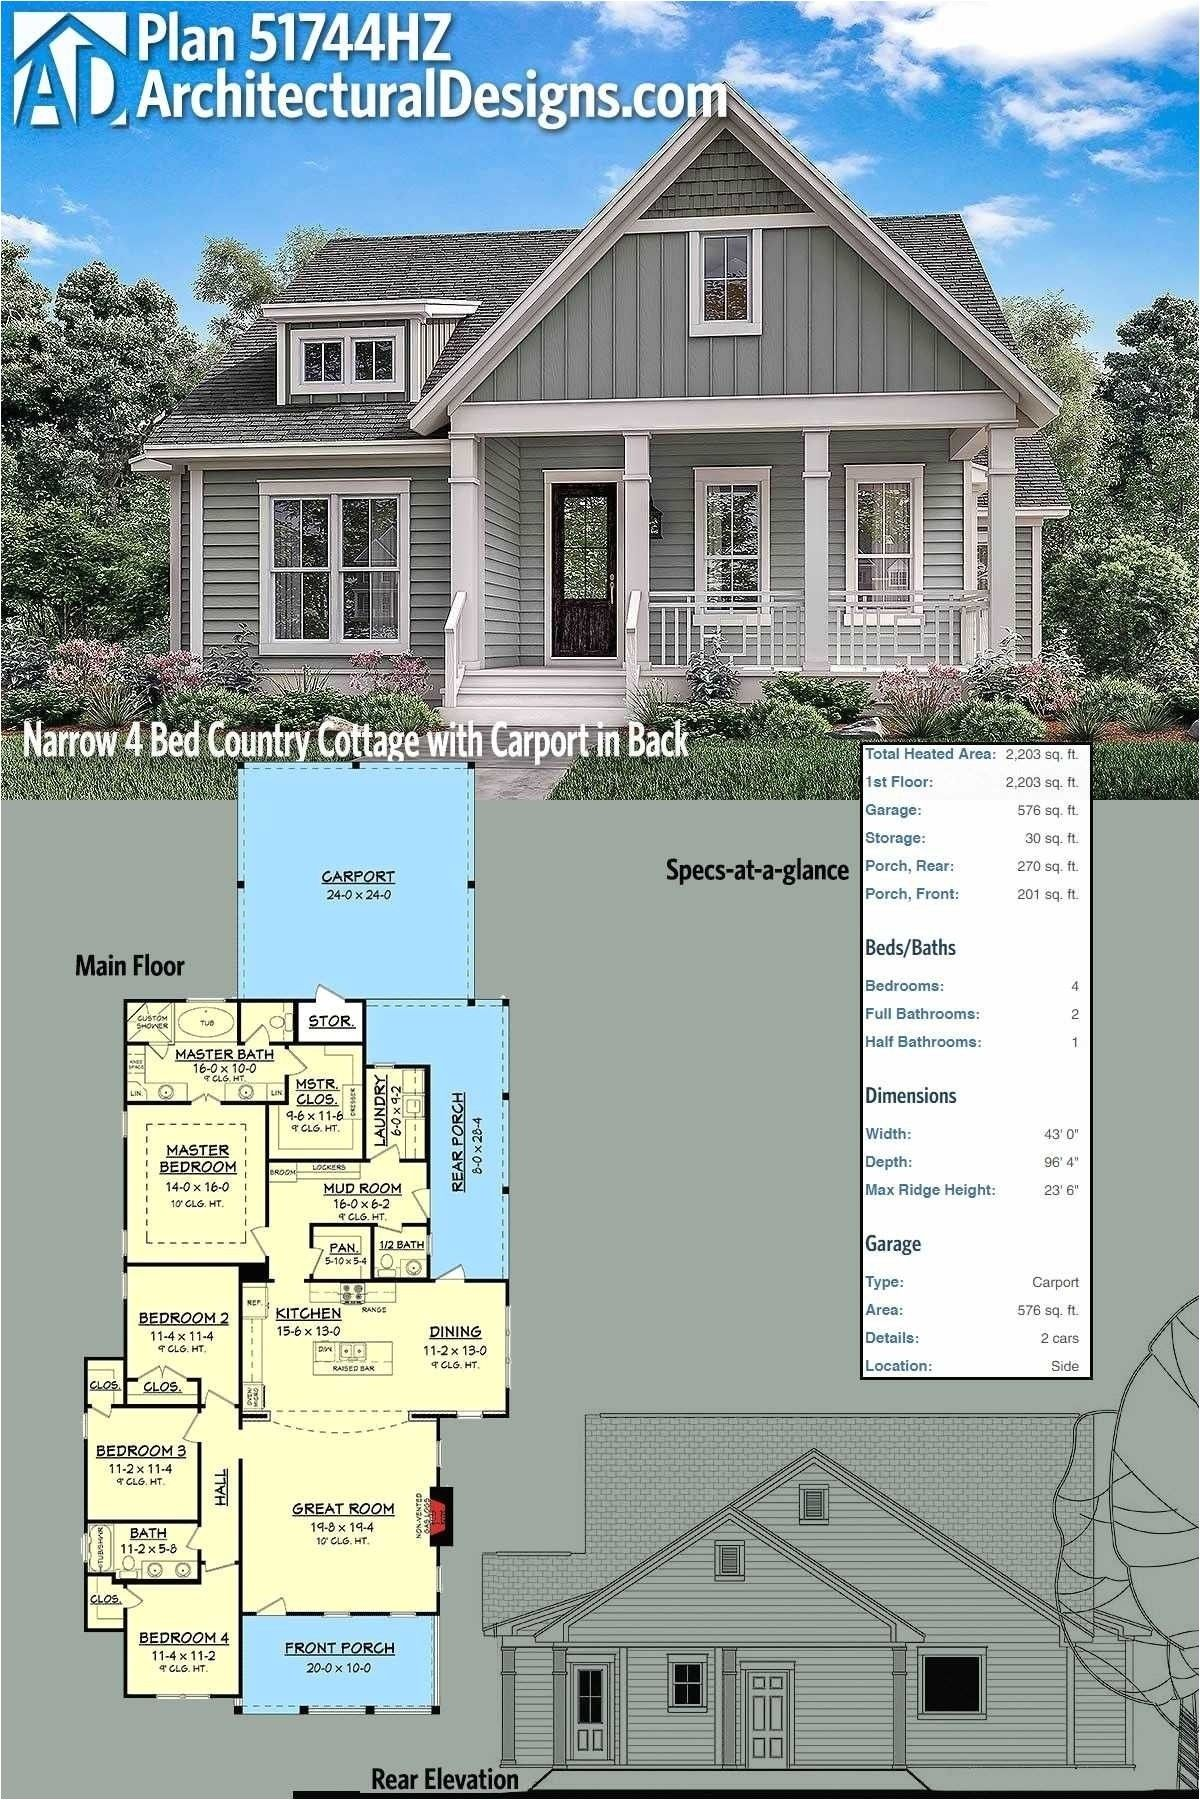 22 Cheap House Plans To Build House Plans Under 50k Inexpensive House Plans Craftsman House Plans House Plans Farmhouse